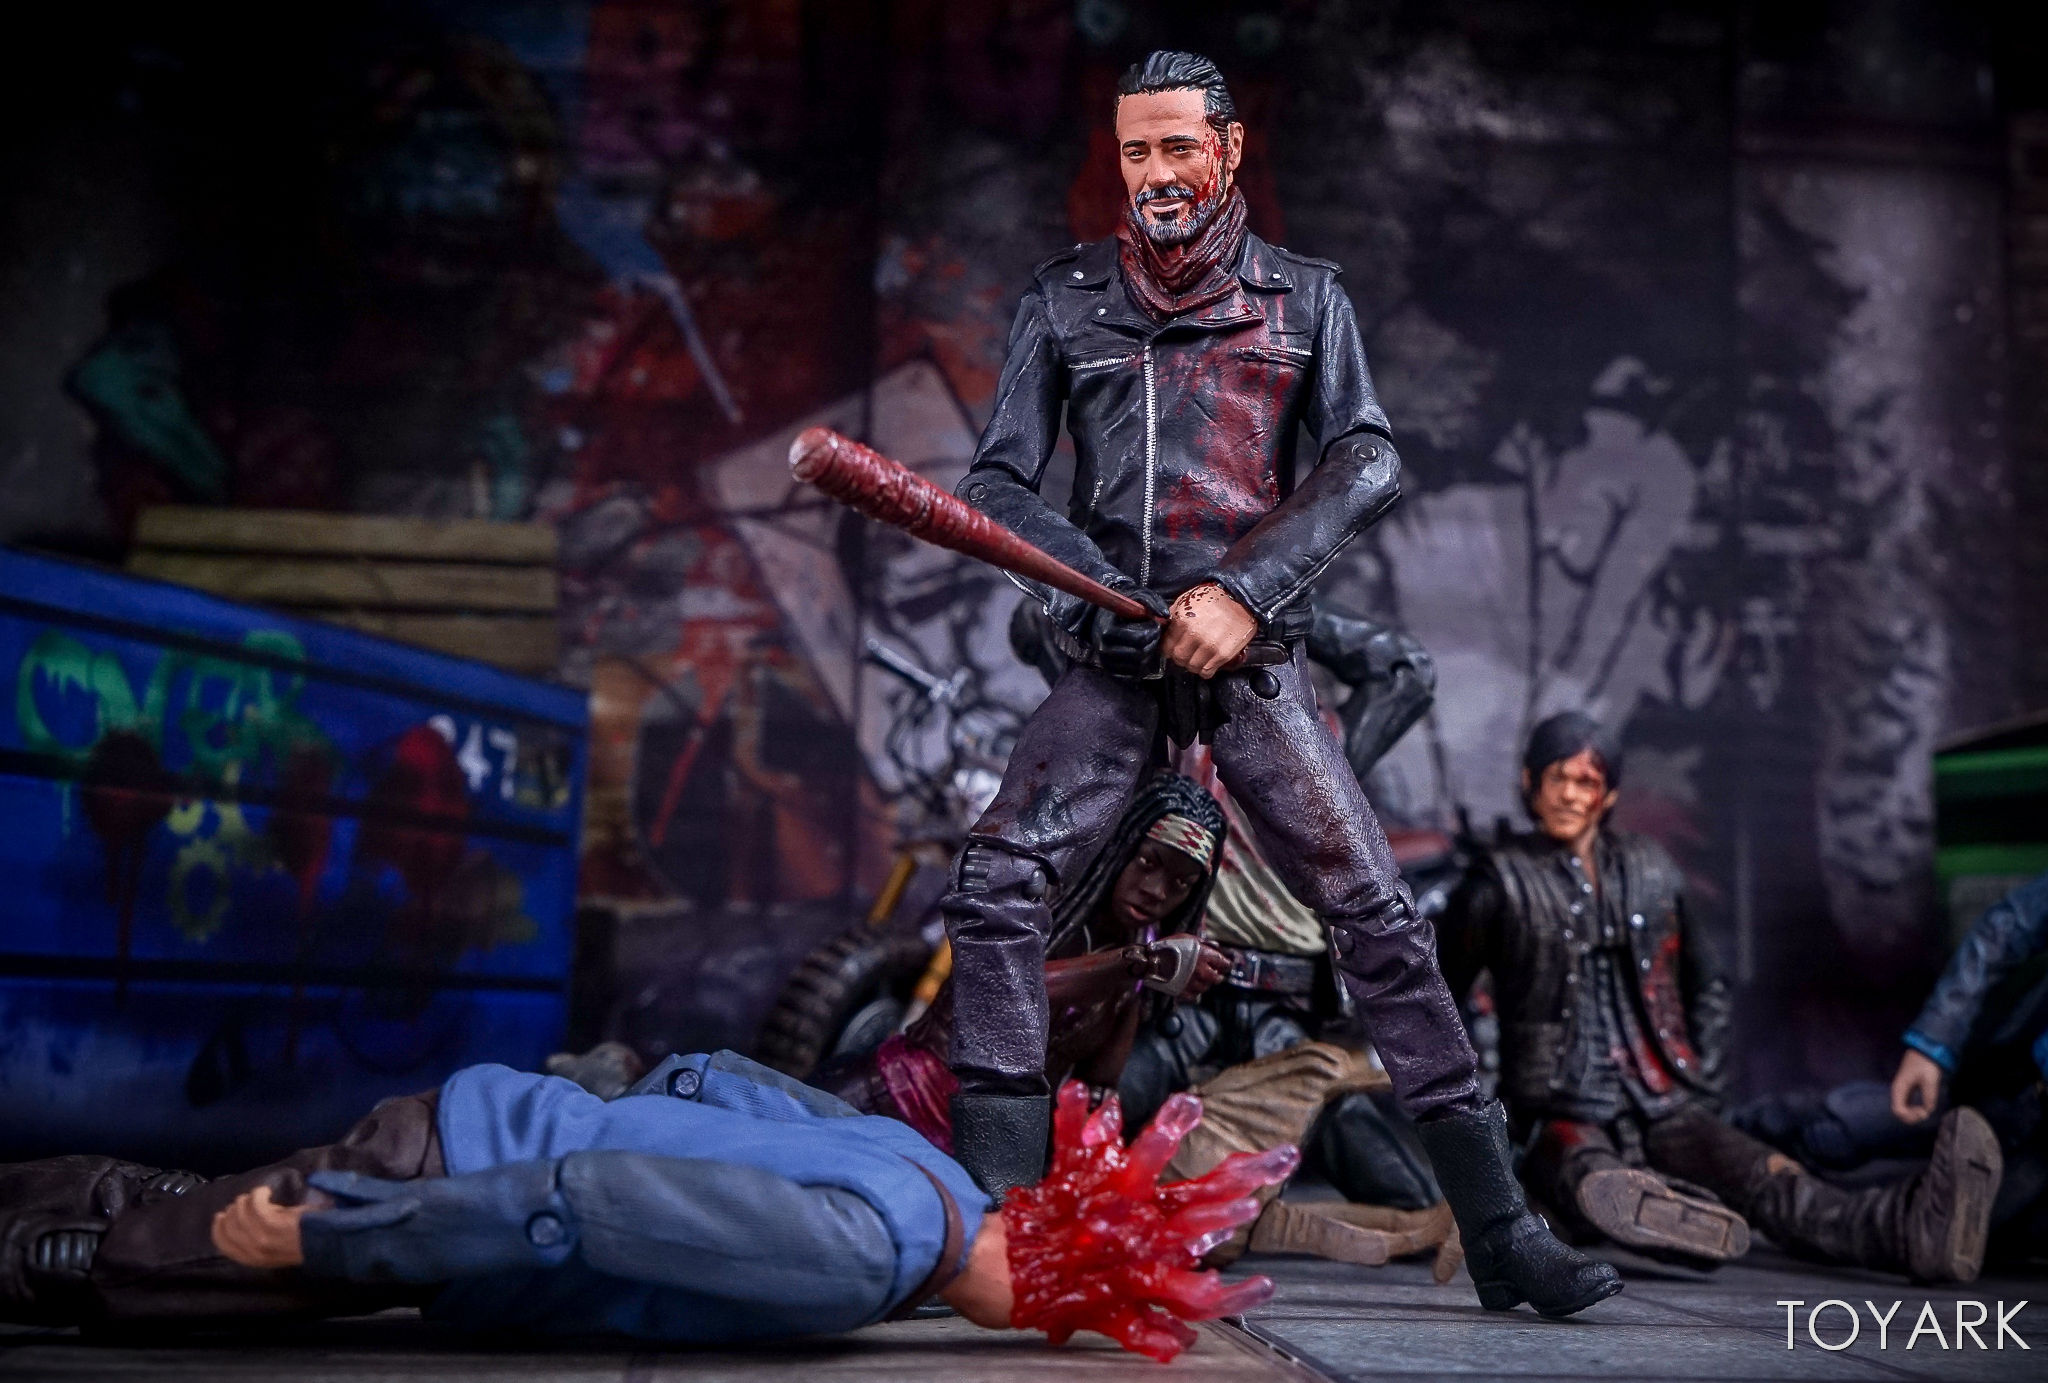 http://news.toyark.com/wp-content/uploads/sites/4/2017/09/Walking-Dead-Glenn-and-Negan-Set-037.jpg